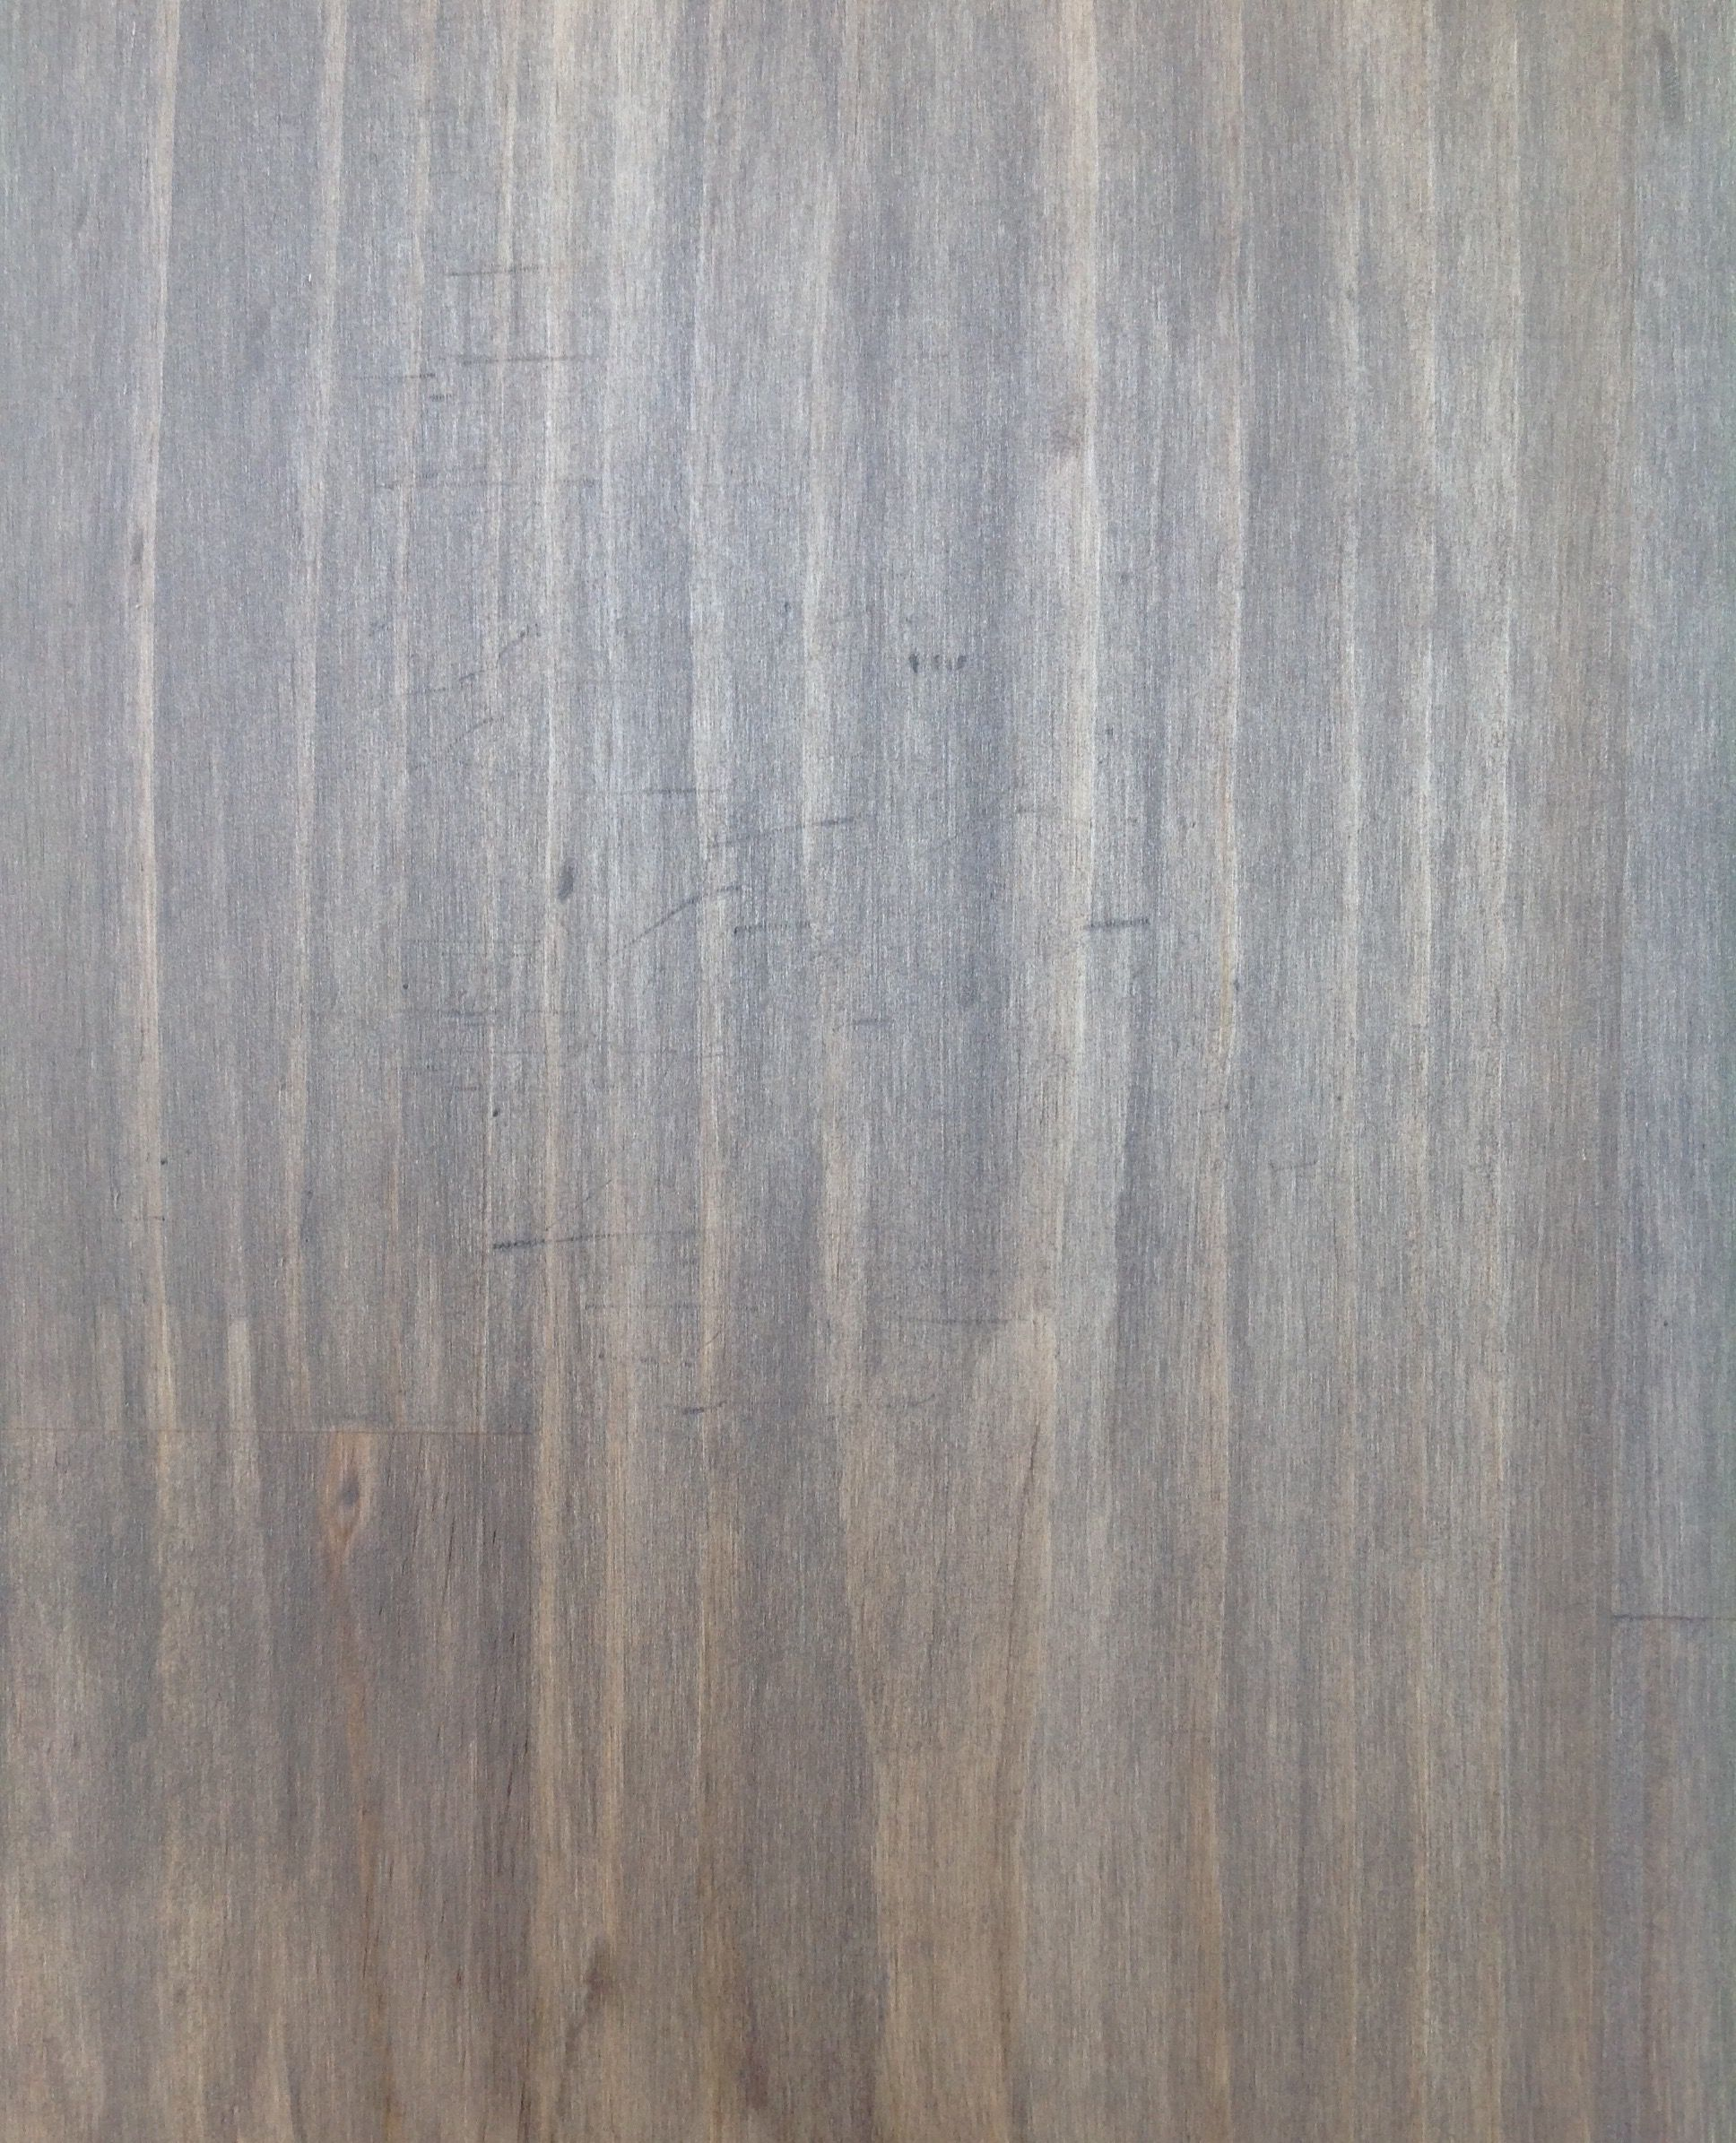 Finally Found A Perfect Stain That Looks Like Weathered Wood Timber Cabots Australia Interior Water Bas Staining Wood Weathered Wood Stain Wood Stain Colors